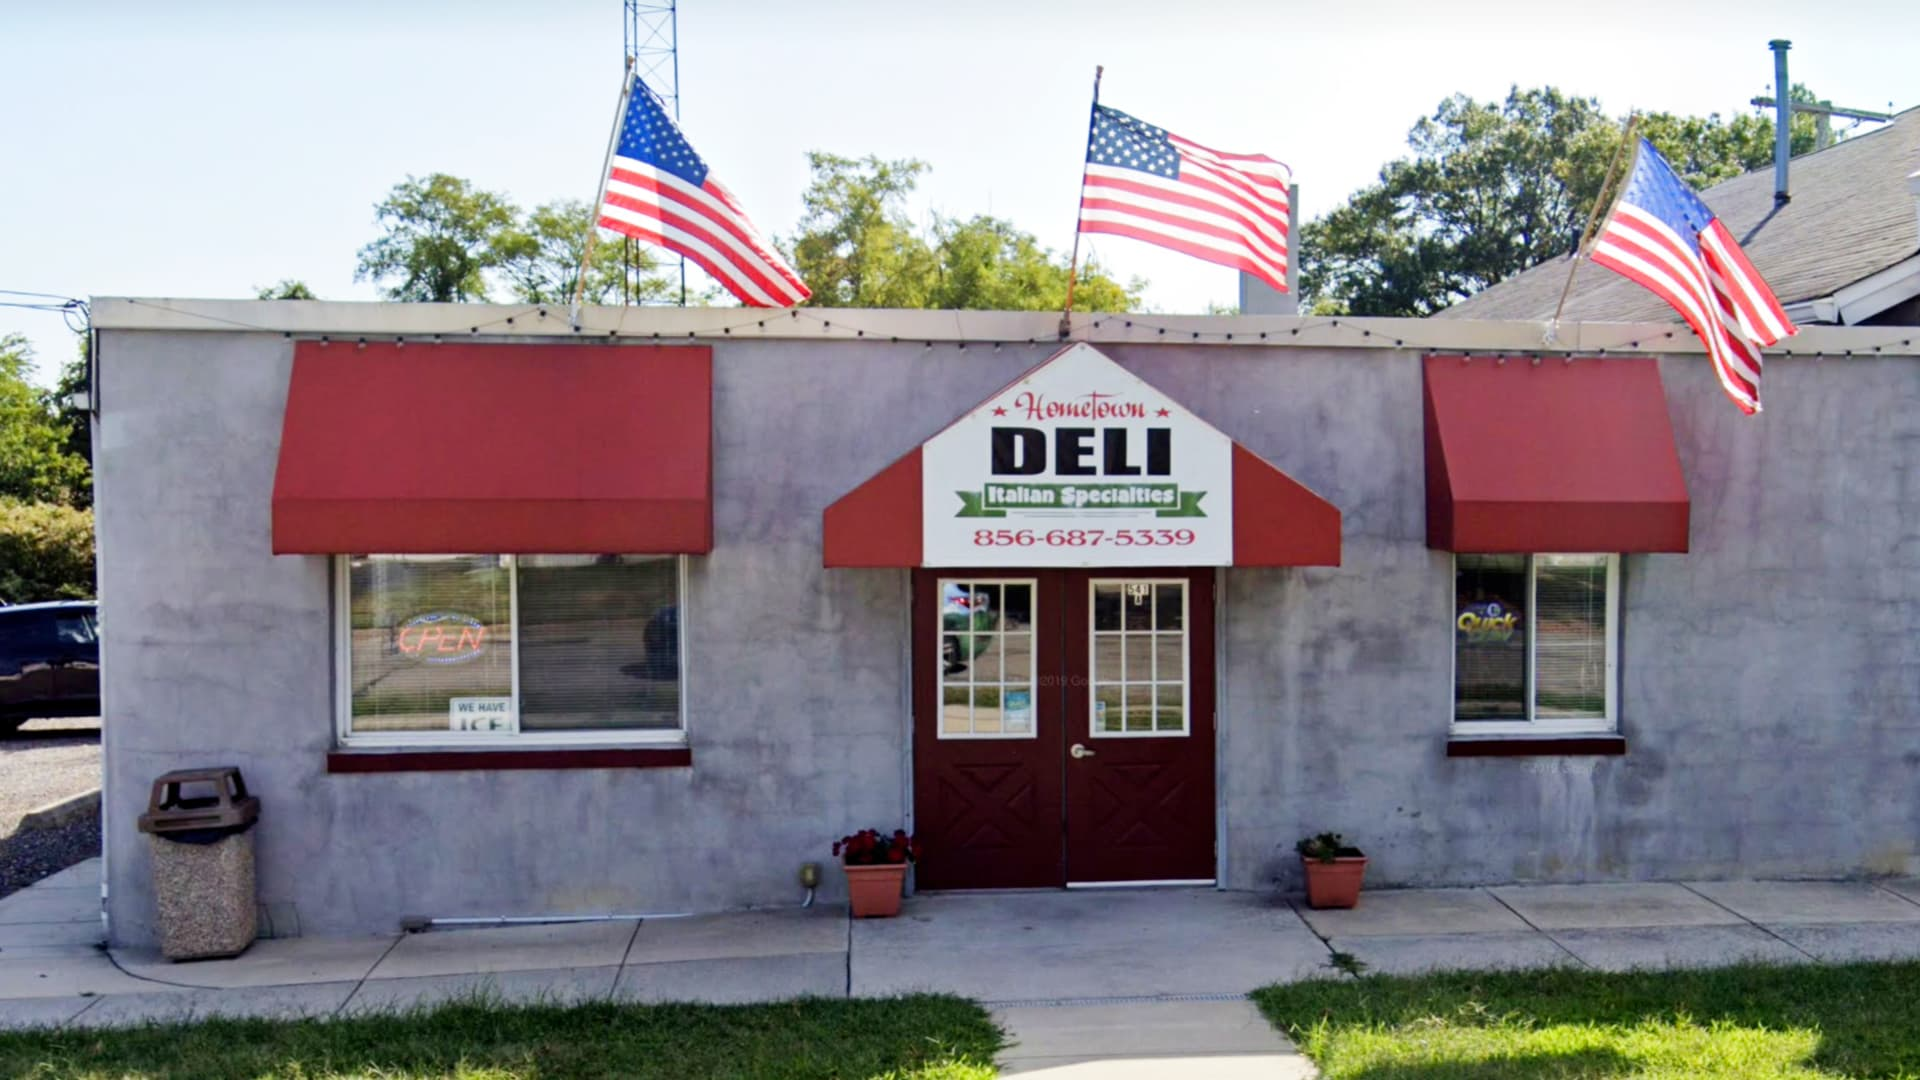 Your Hometown Deli in Paulsboro, N.J.